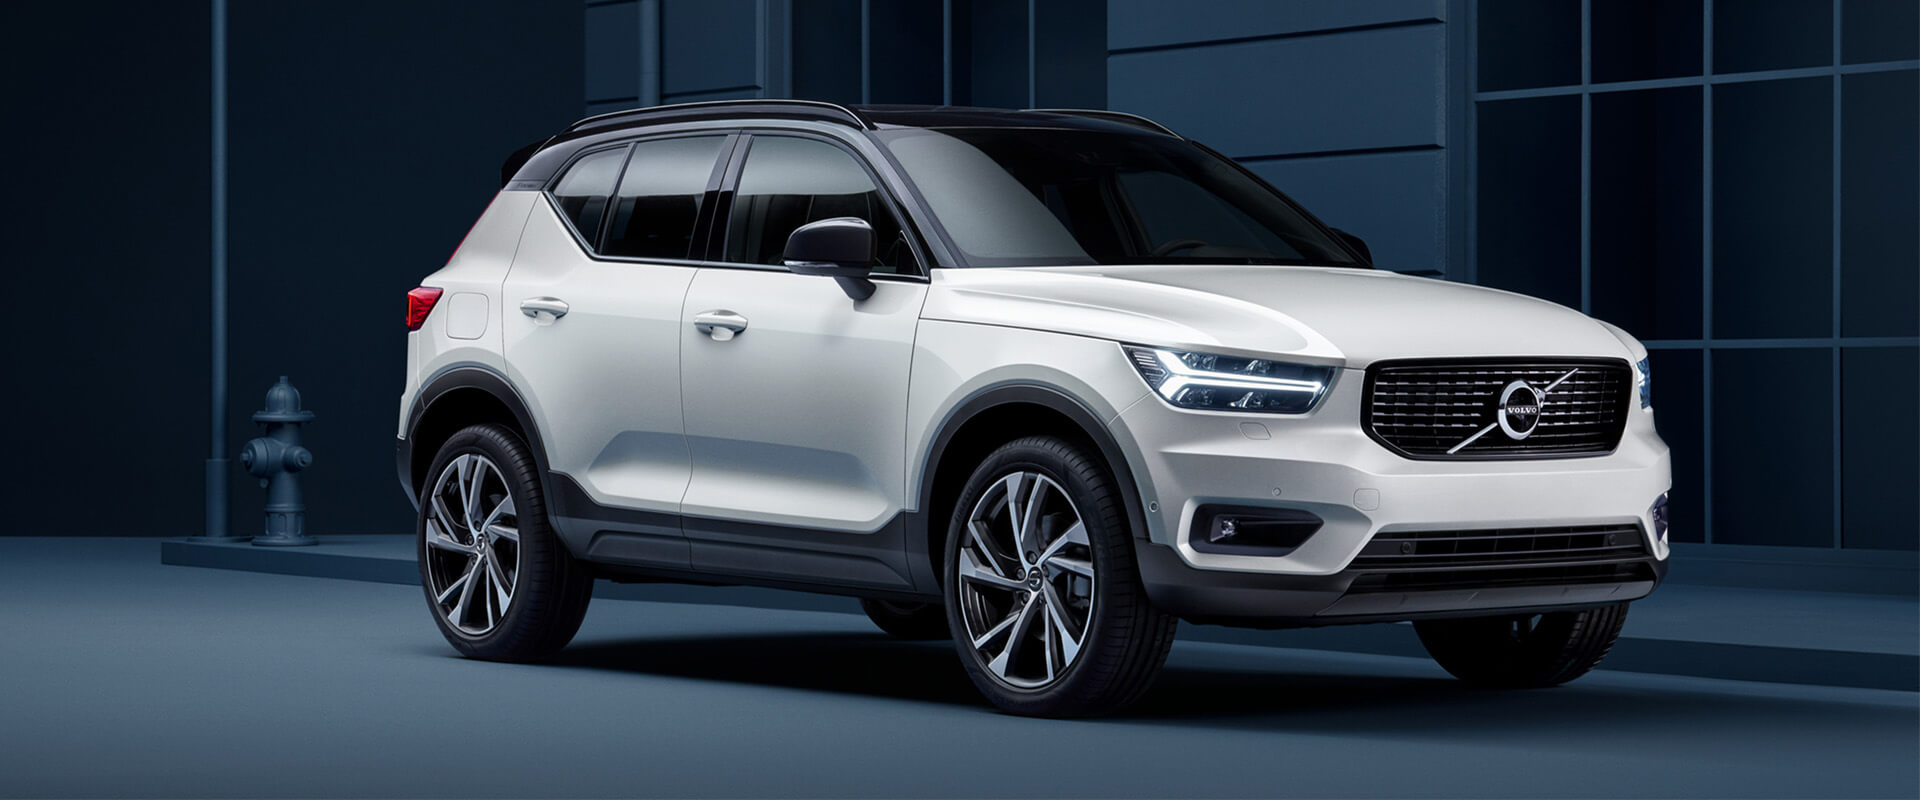 Volvo First Ever XC40 For Sale In Warwick Farm - Volvo Cars